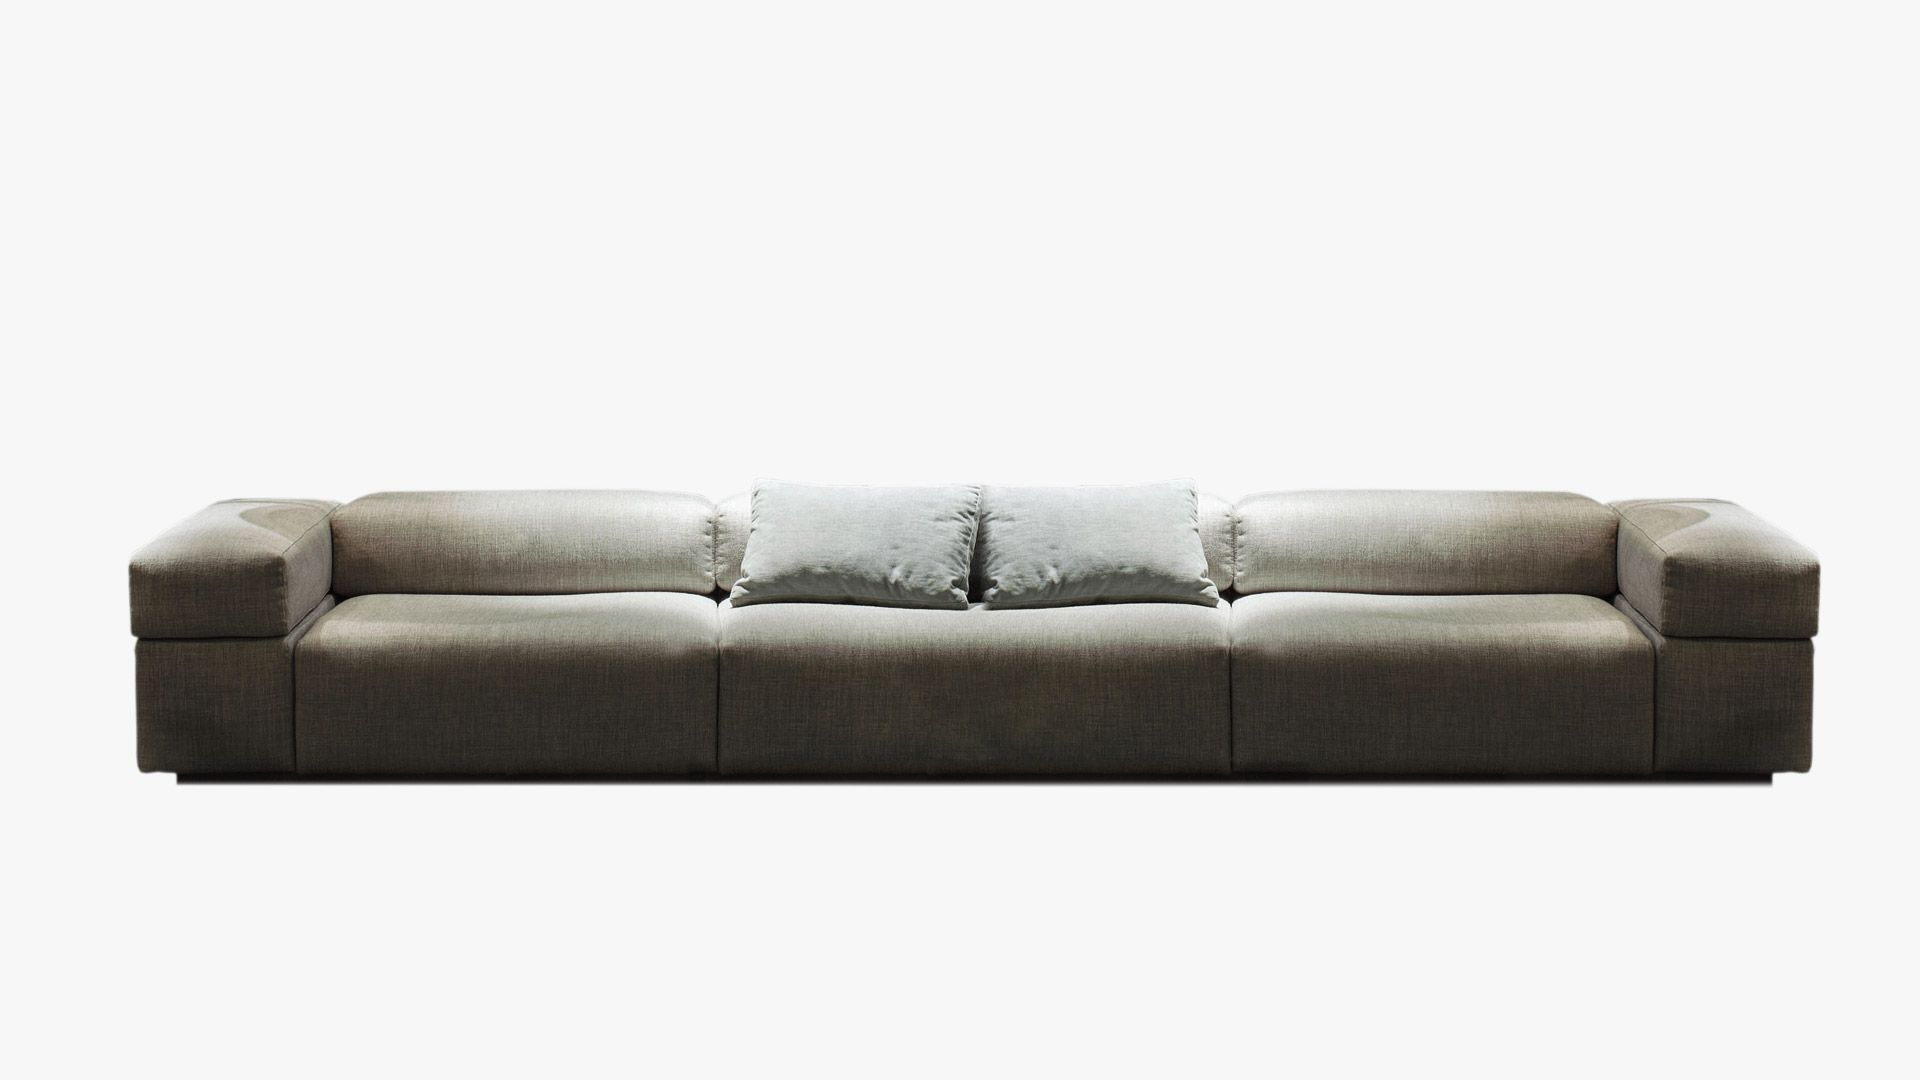 Square Shapes And Extra Softness, Opposites That Attract, For Brick Lane  Sofa With Base Flush With The Floor Designed By Christophe Pillet,